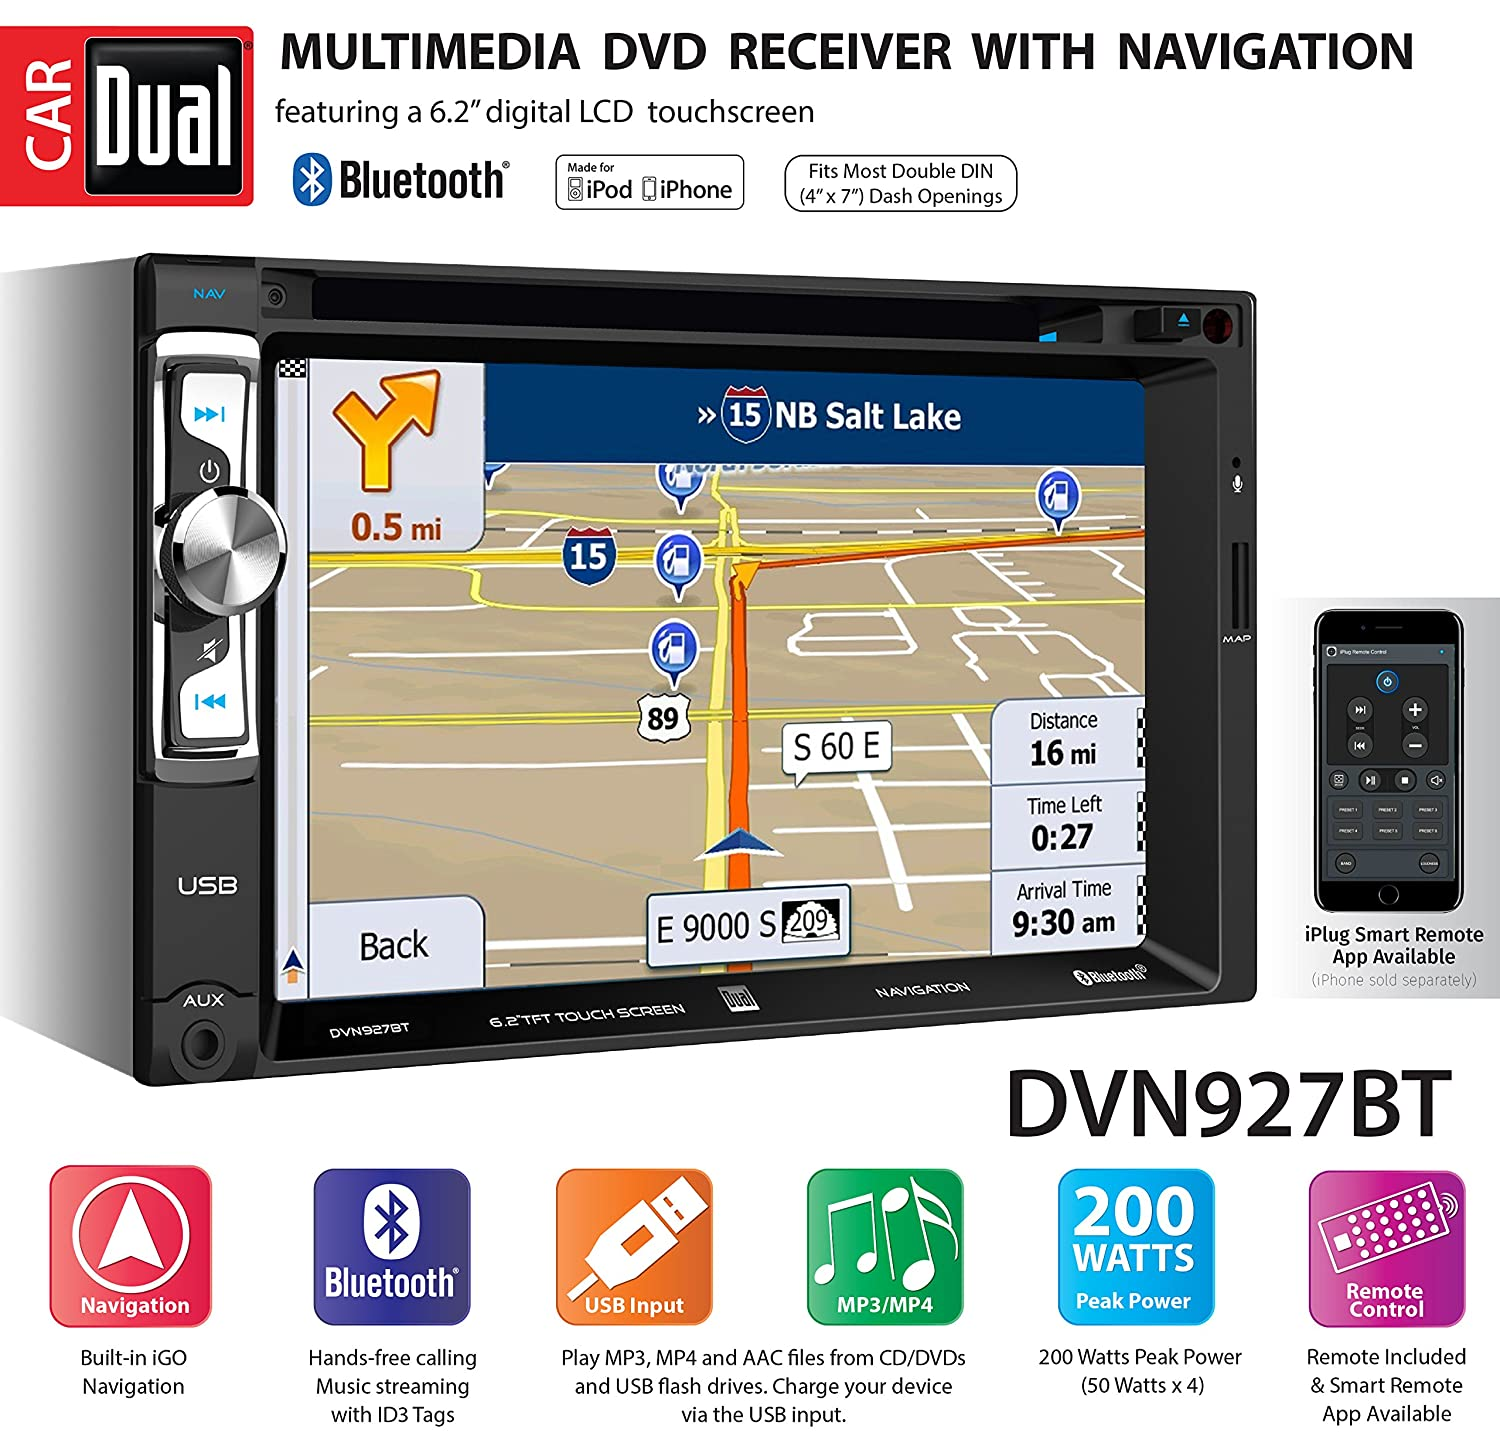 Dual Electronics Dvn927bt Digital Multimedia 62 Inch Boss Audio Bv9364b Wiring Harness Led Backlit Lcd Touchscreen Double Din Car Stereo Receiver With Built In Navigation